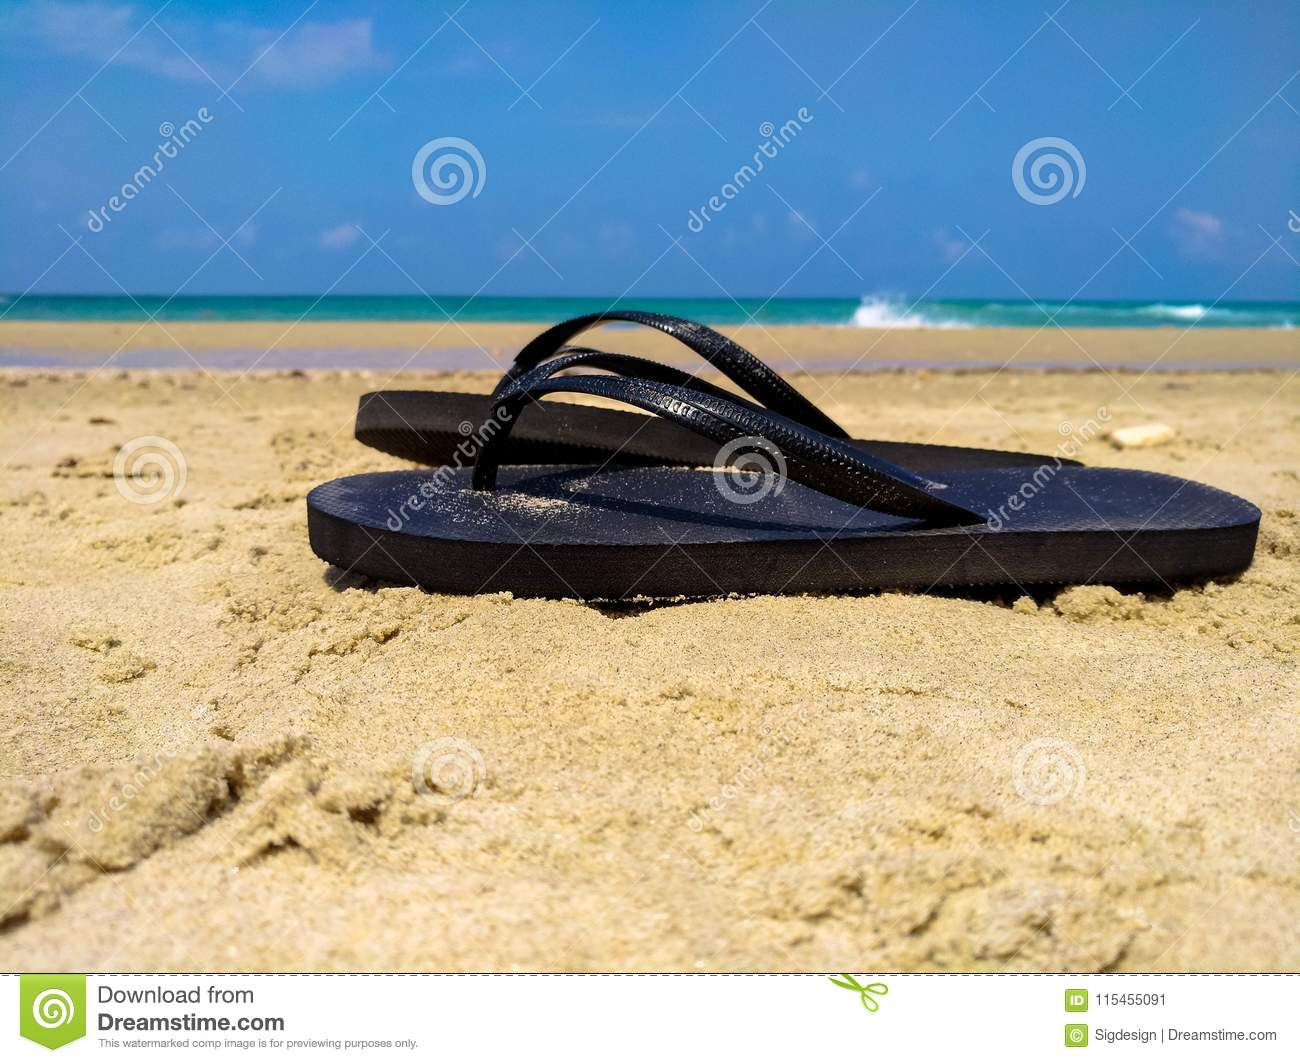 62381c6d1dce Black Flip Flops On A Sand With Blue Sea And Sky Background Stock ...